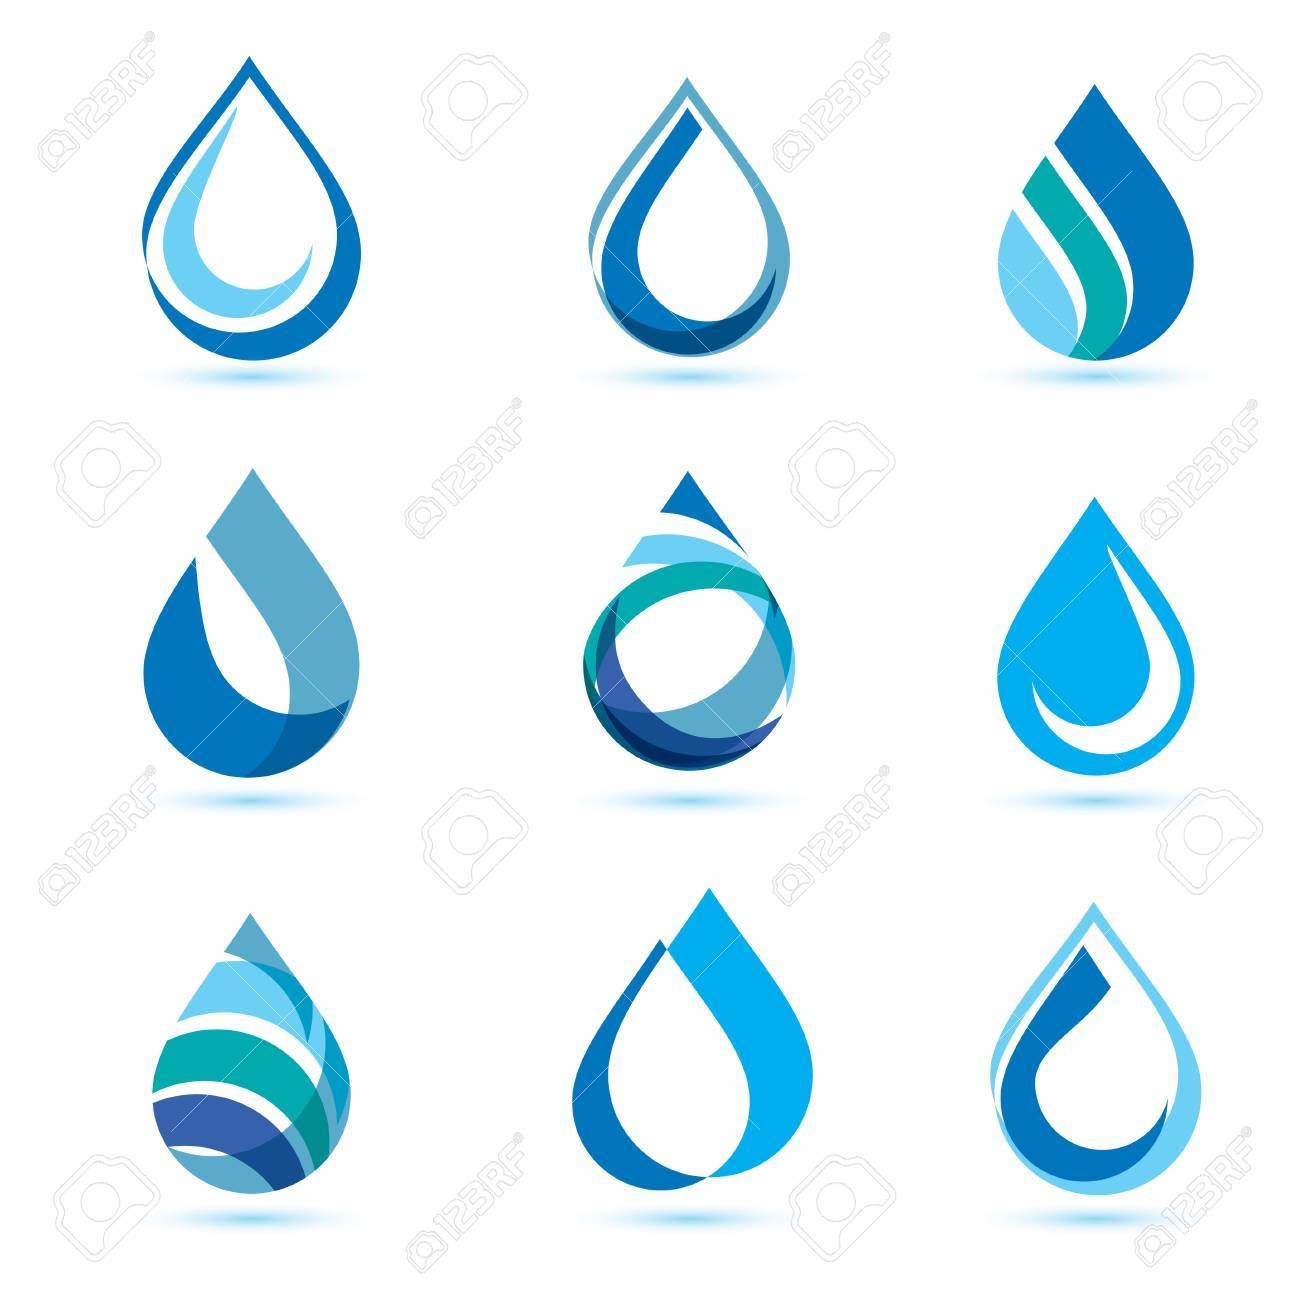 set of abstract blue water drops symbols, logo template - 68890597